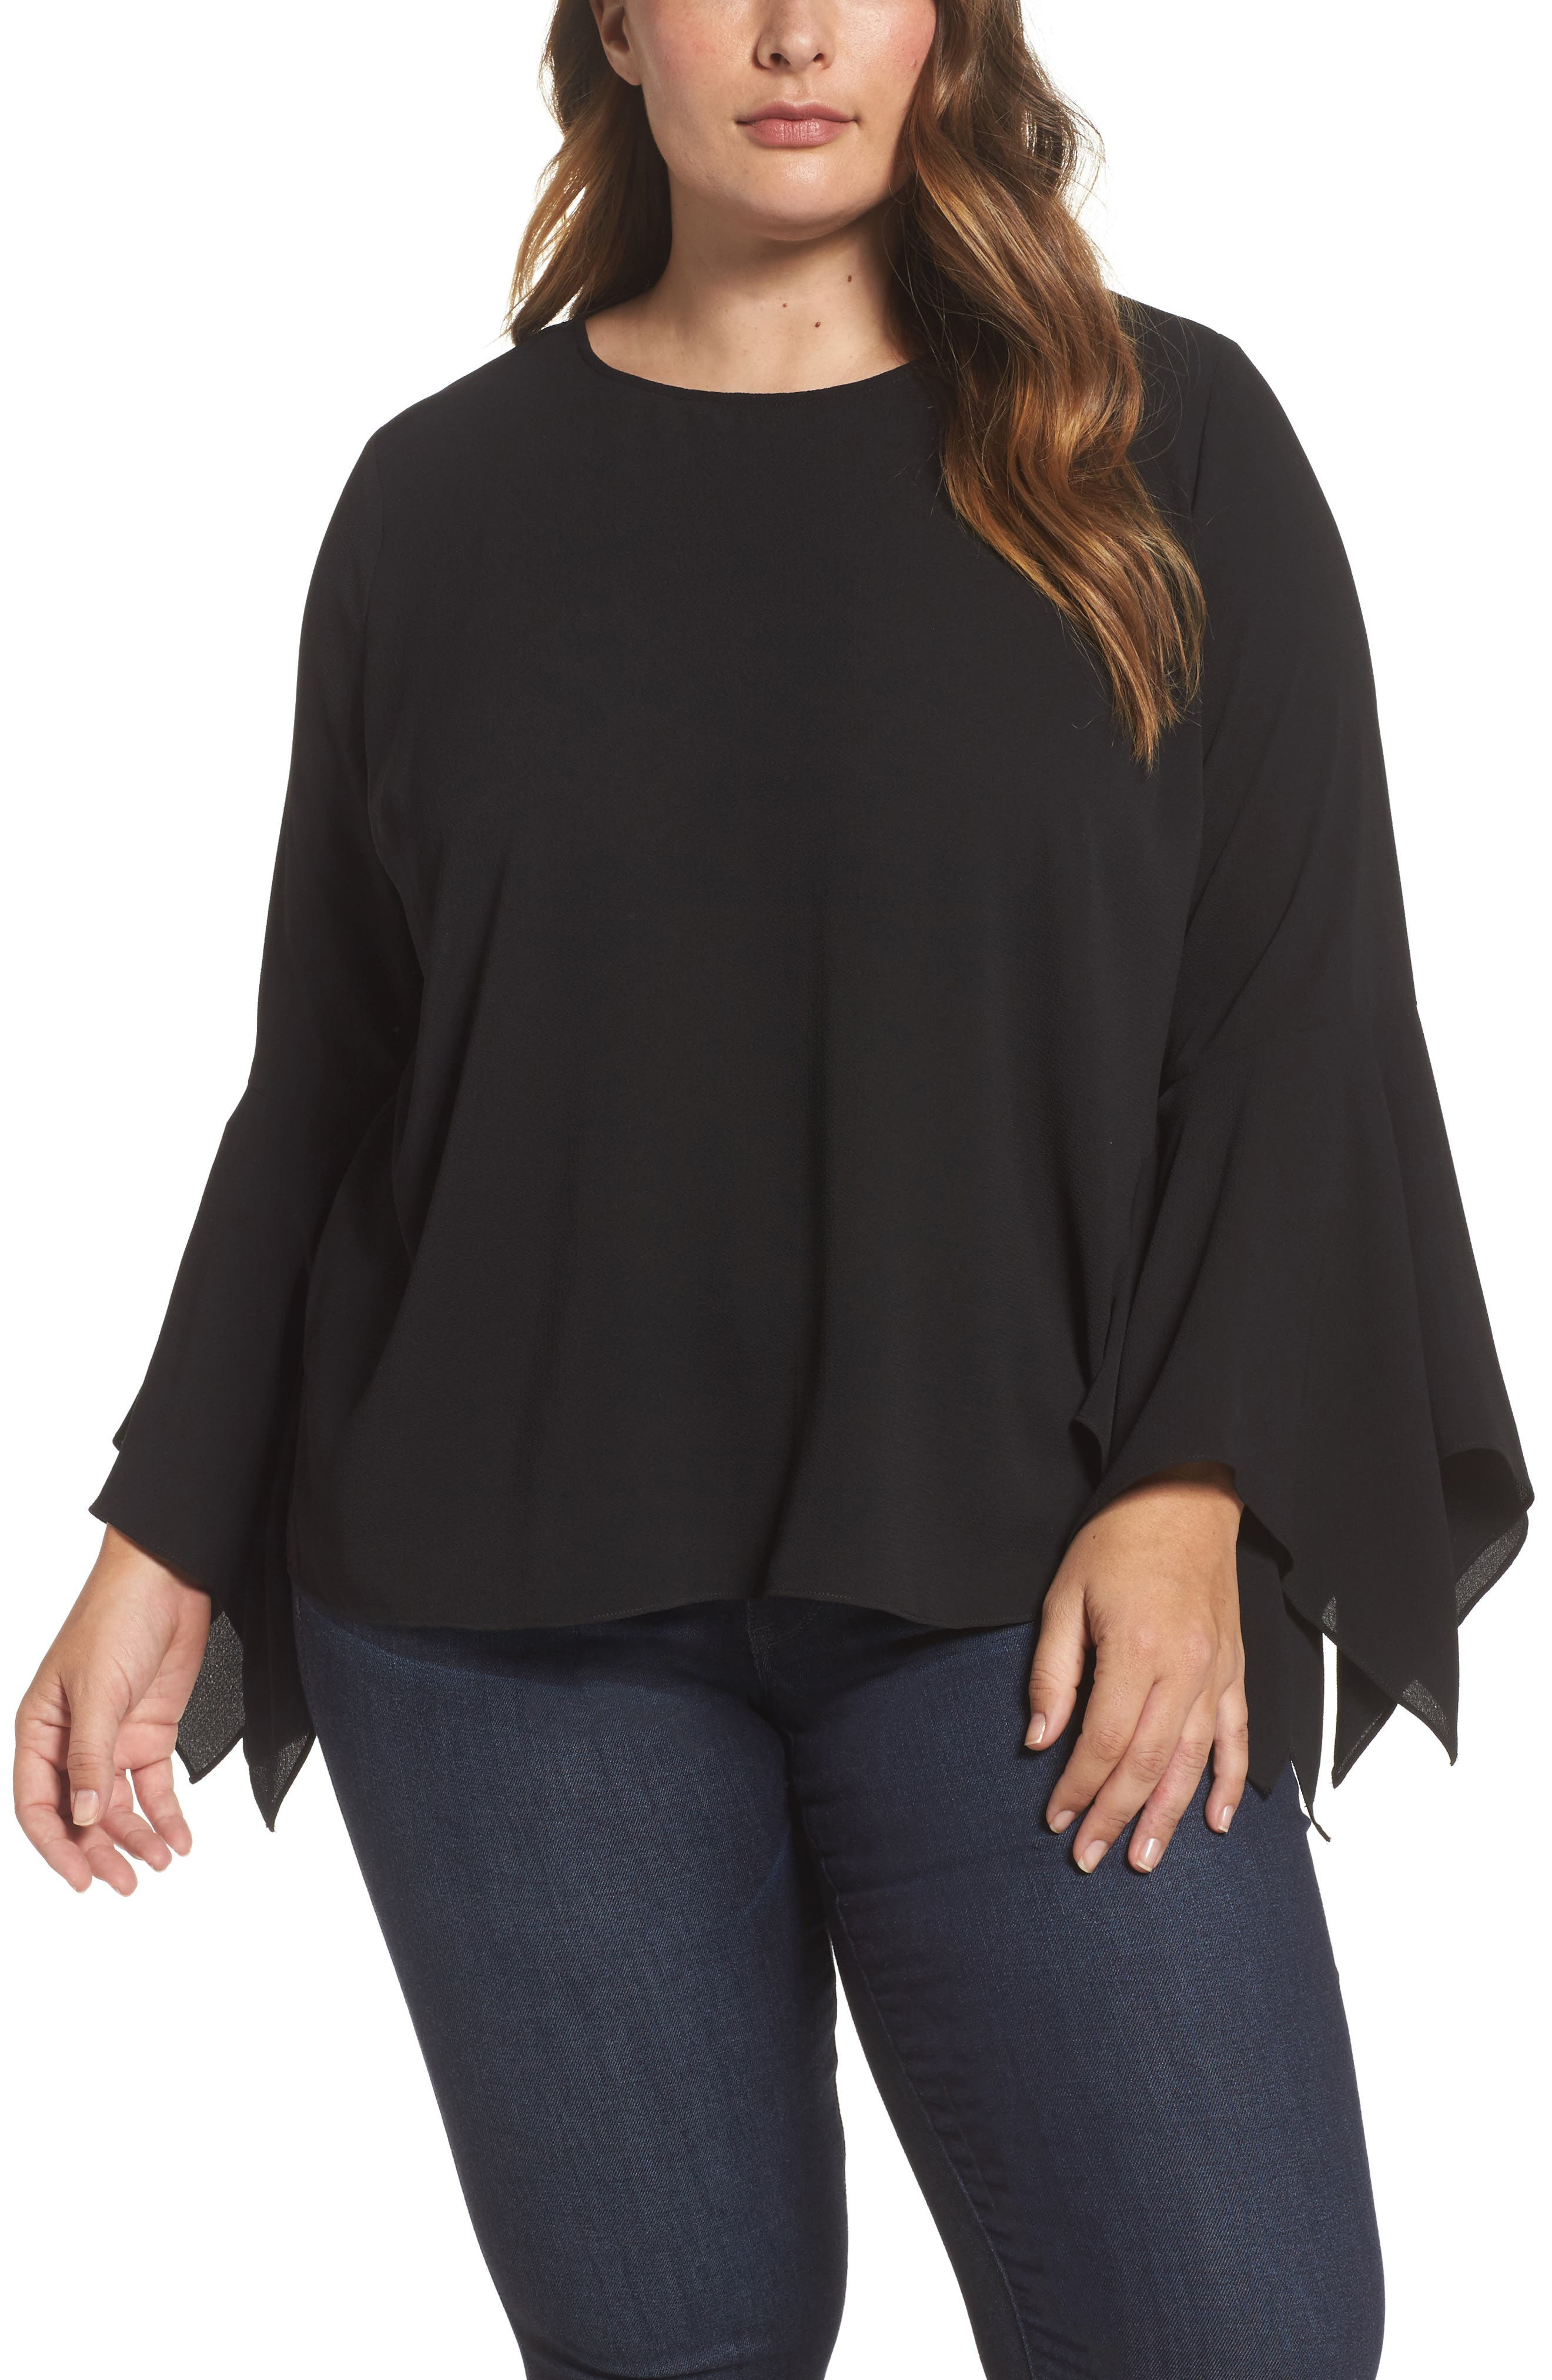 Main Image - Vince Camuto Handkerchief Sleeve Blouse (Plus Size)